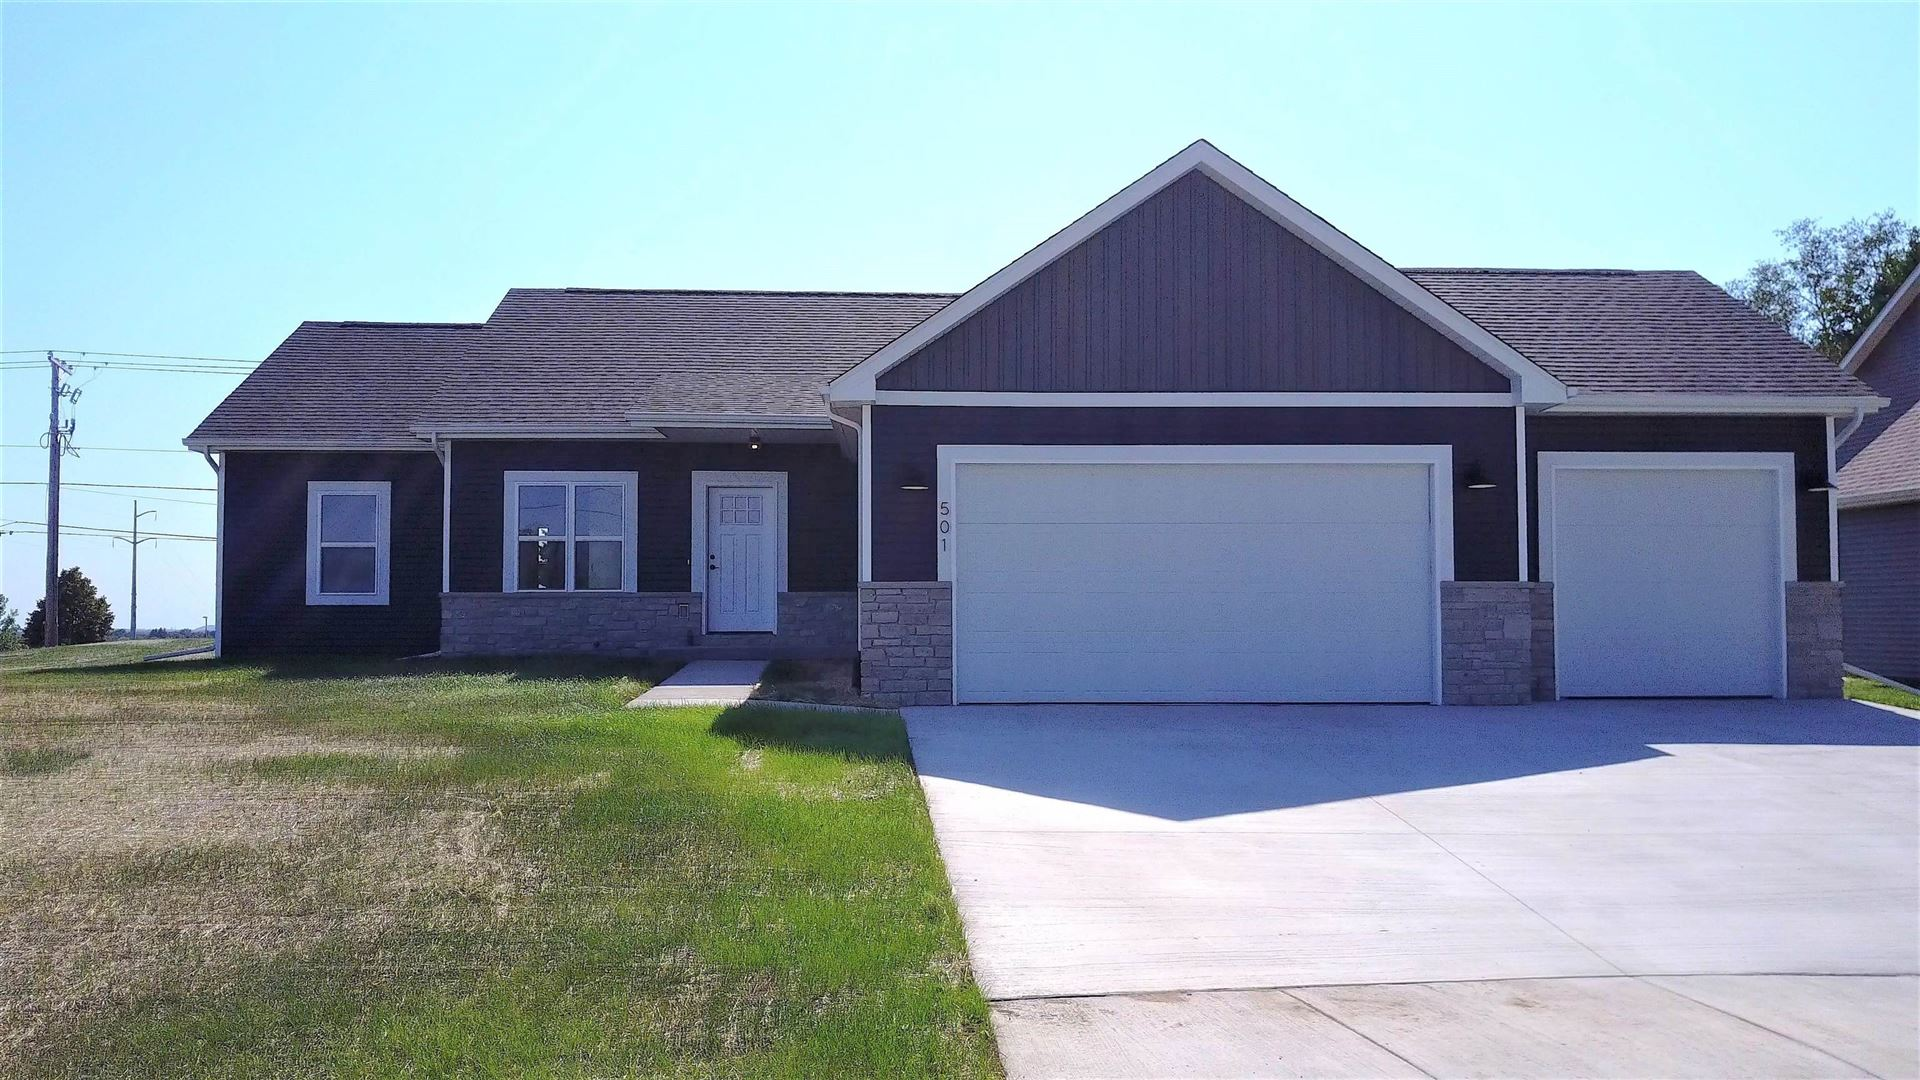 501 Greenway Point Dr, Janesville, WI 53548 - #: 1905097